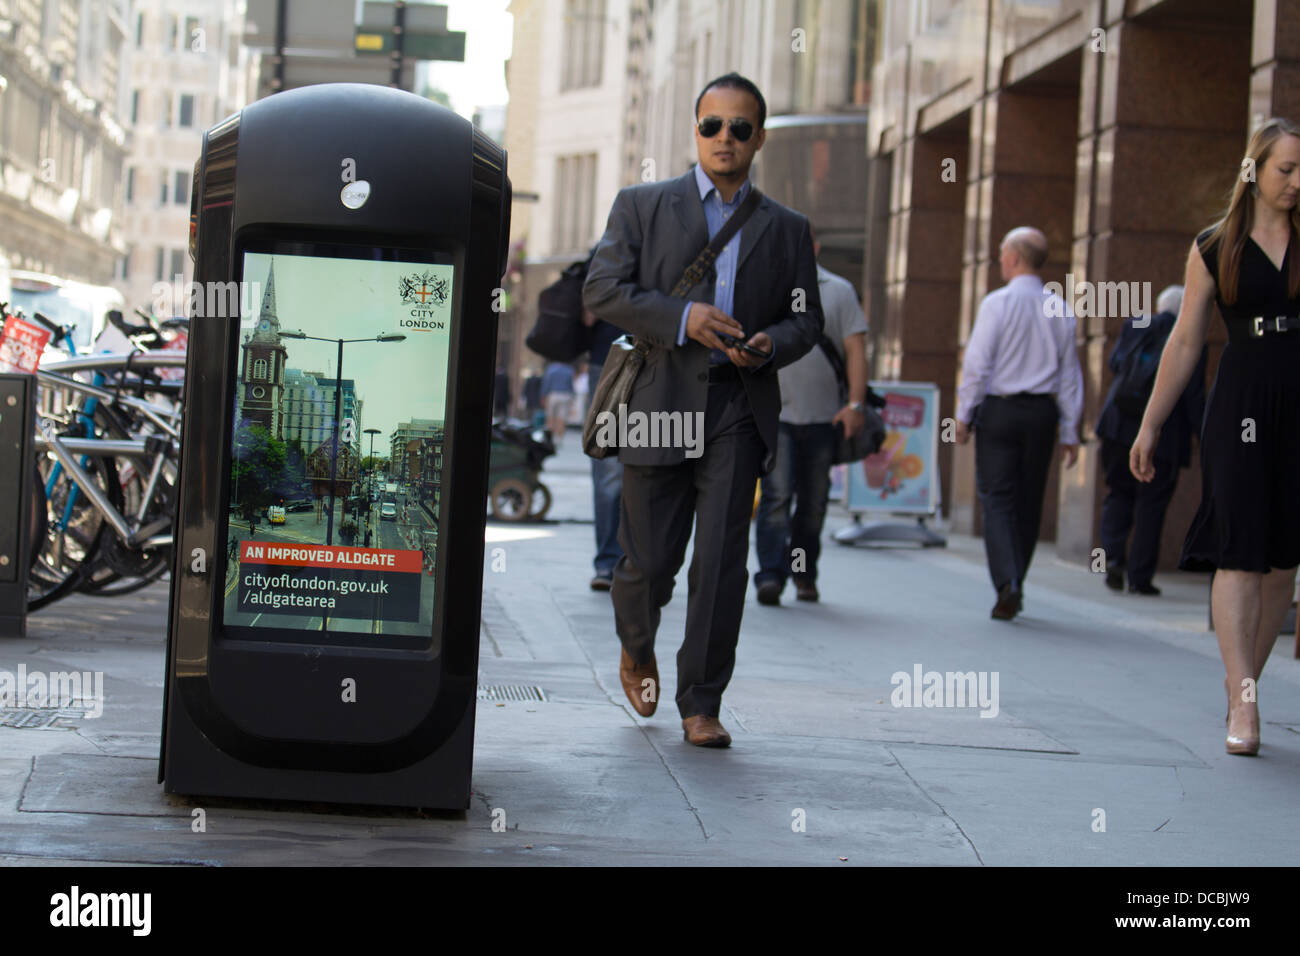 Smart bins city of London wifi wi-fi sniffing smart bins in Moorgate London, with advertising - Stock Image